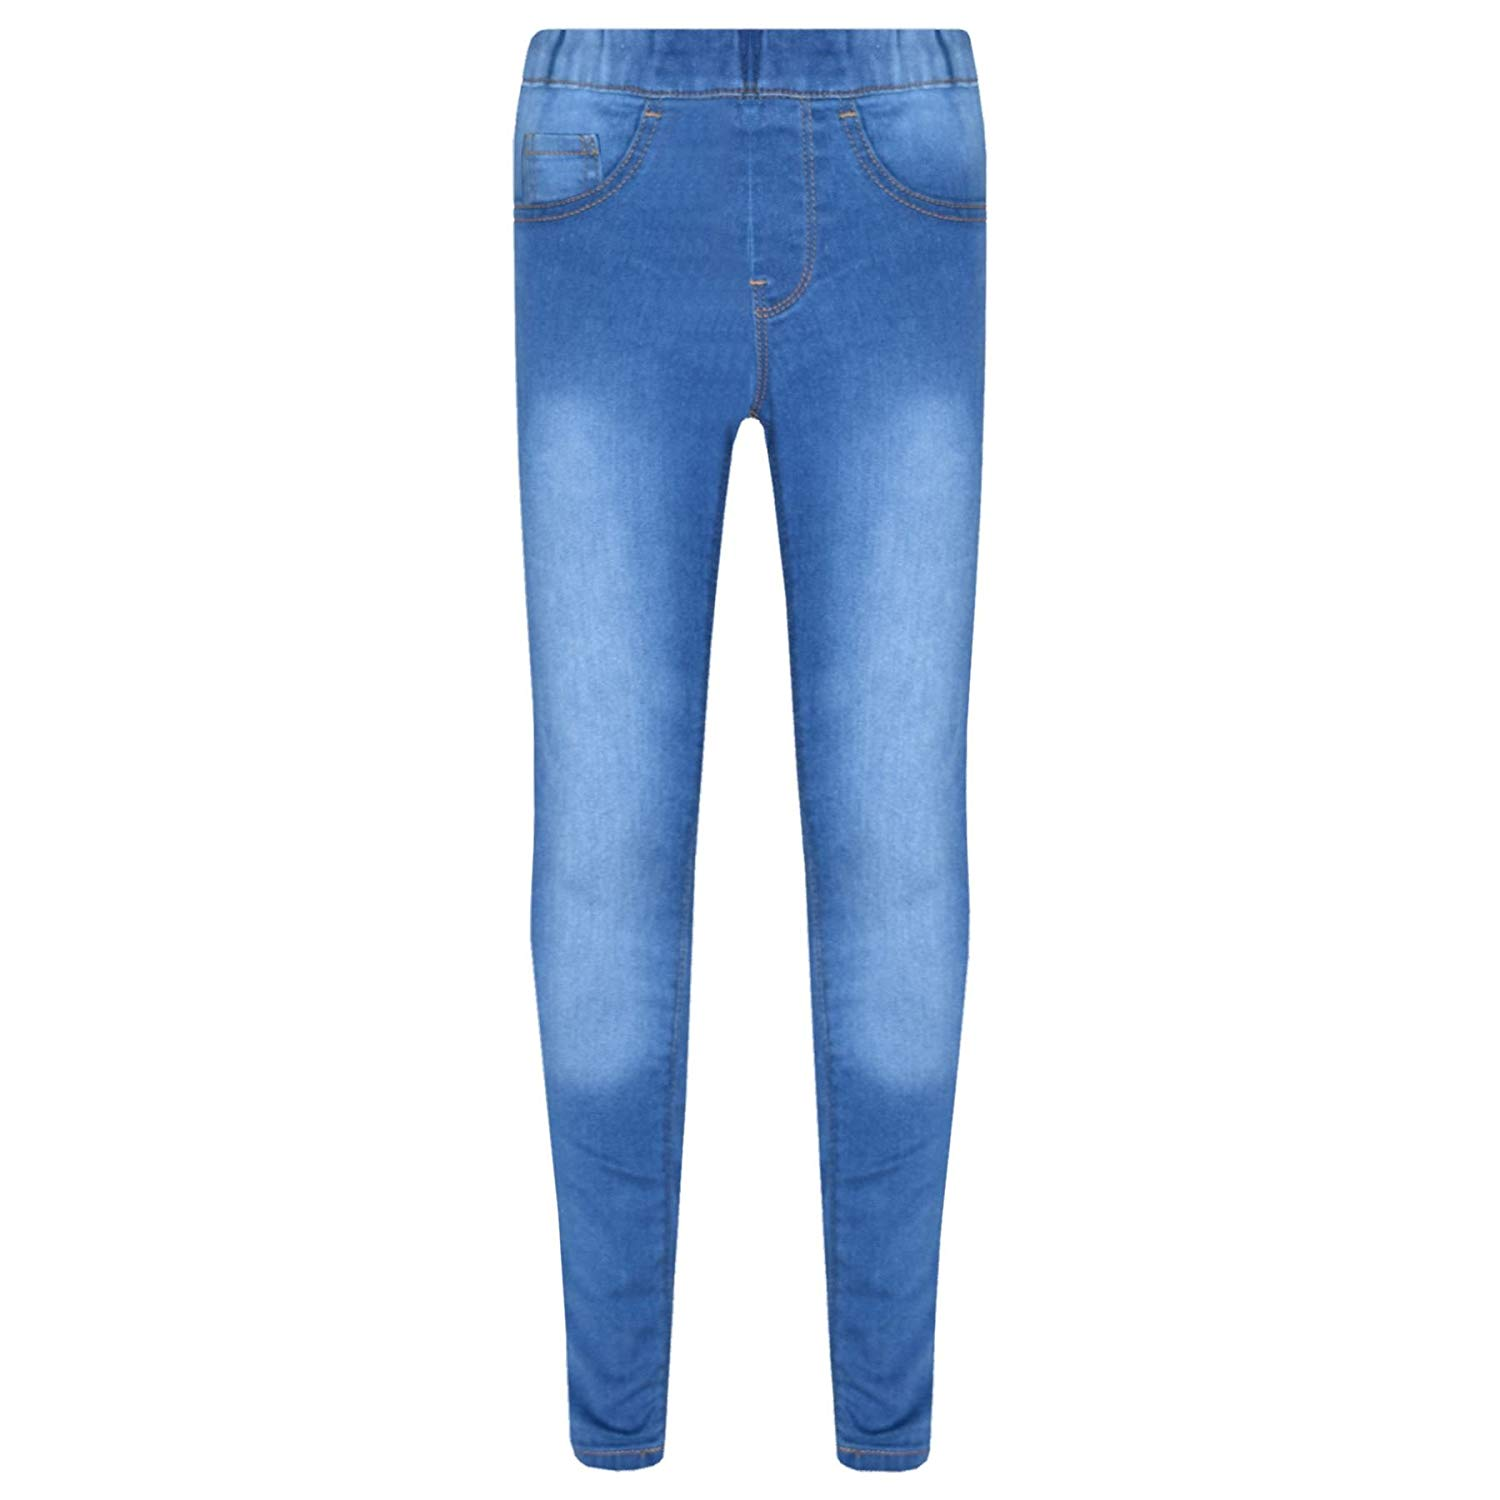 MeMoi Kids Jeggings Jeggings for Kids